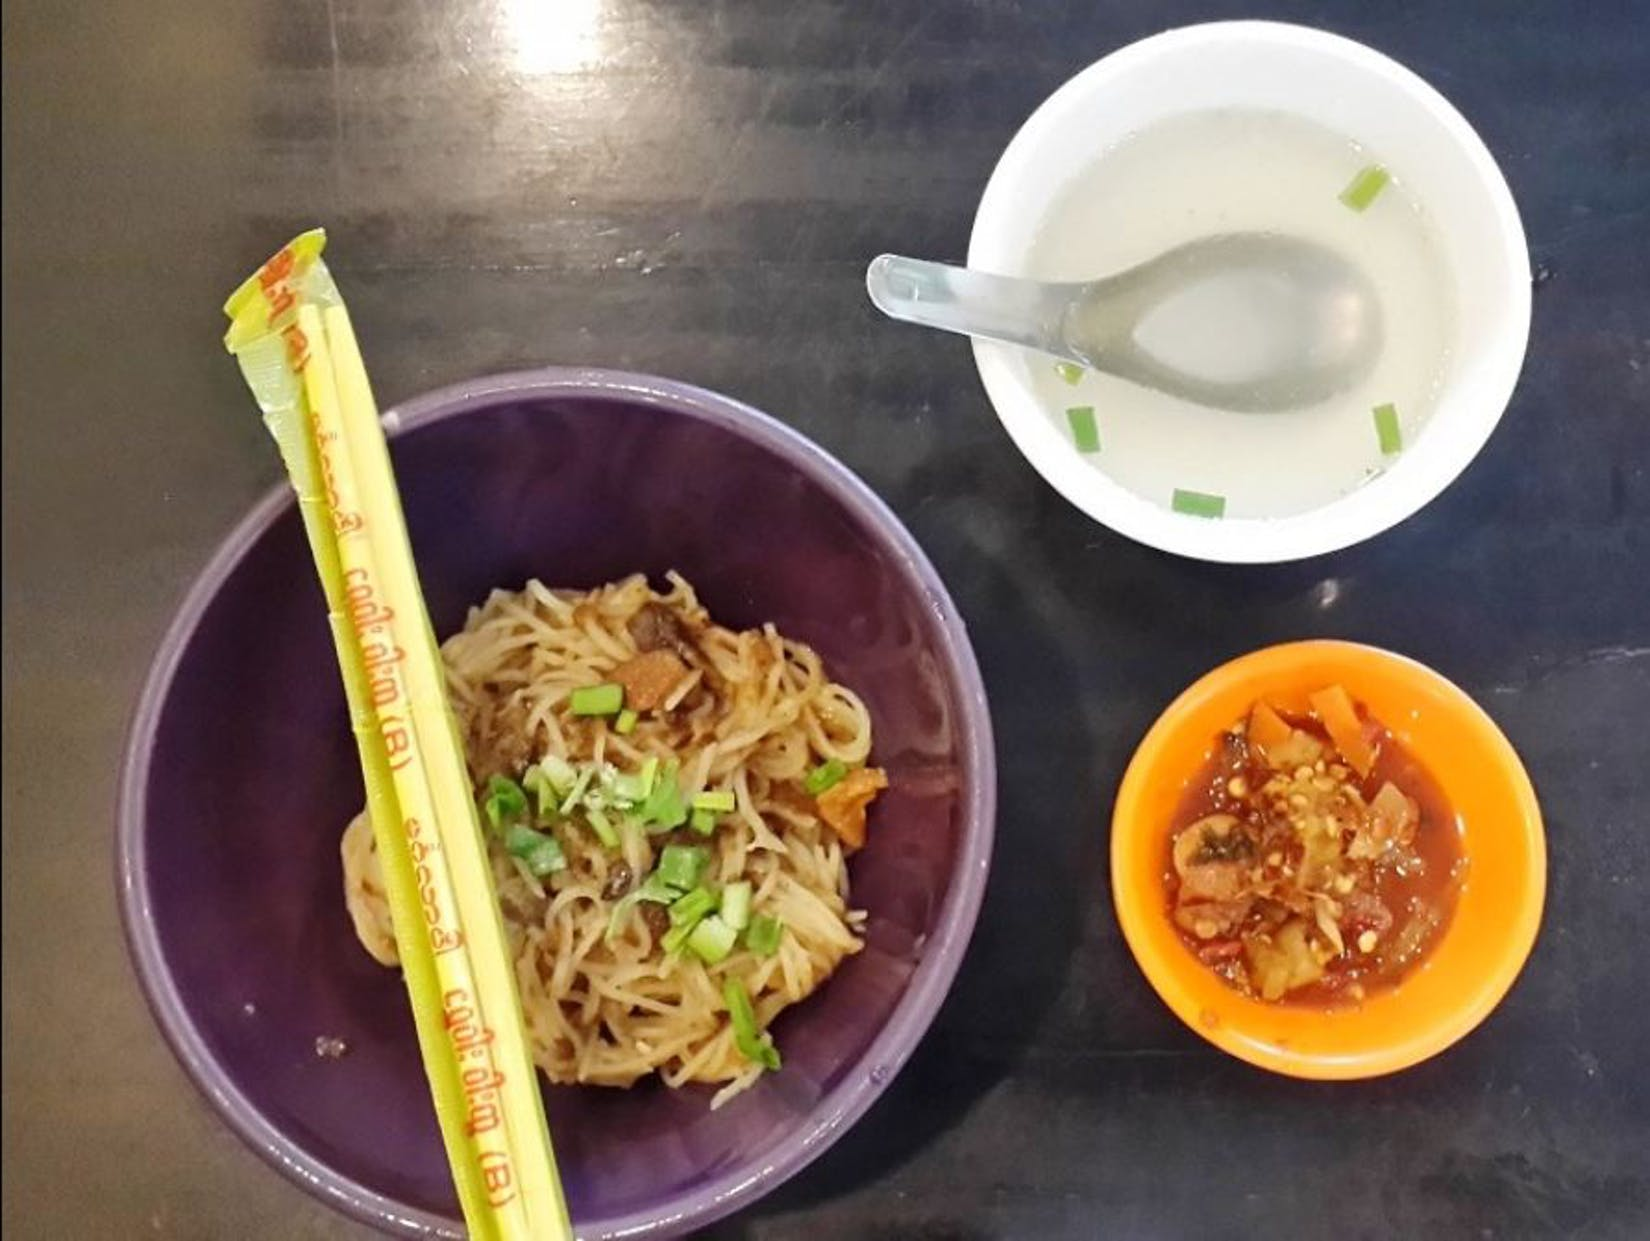 Nan Htike Shan Food and Cold Drink | yathar